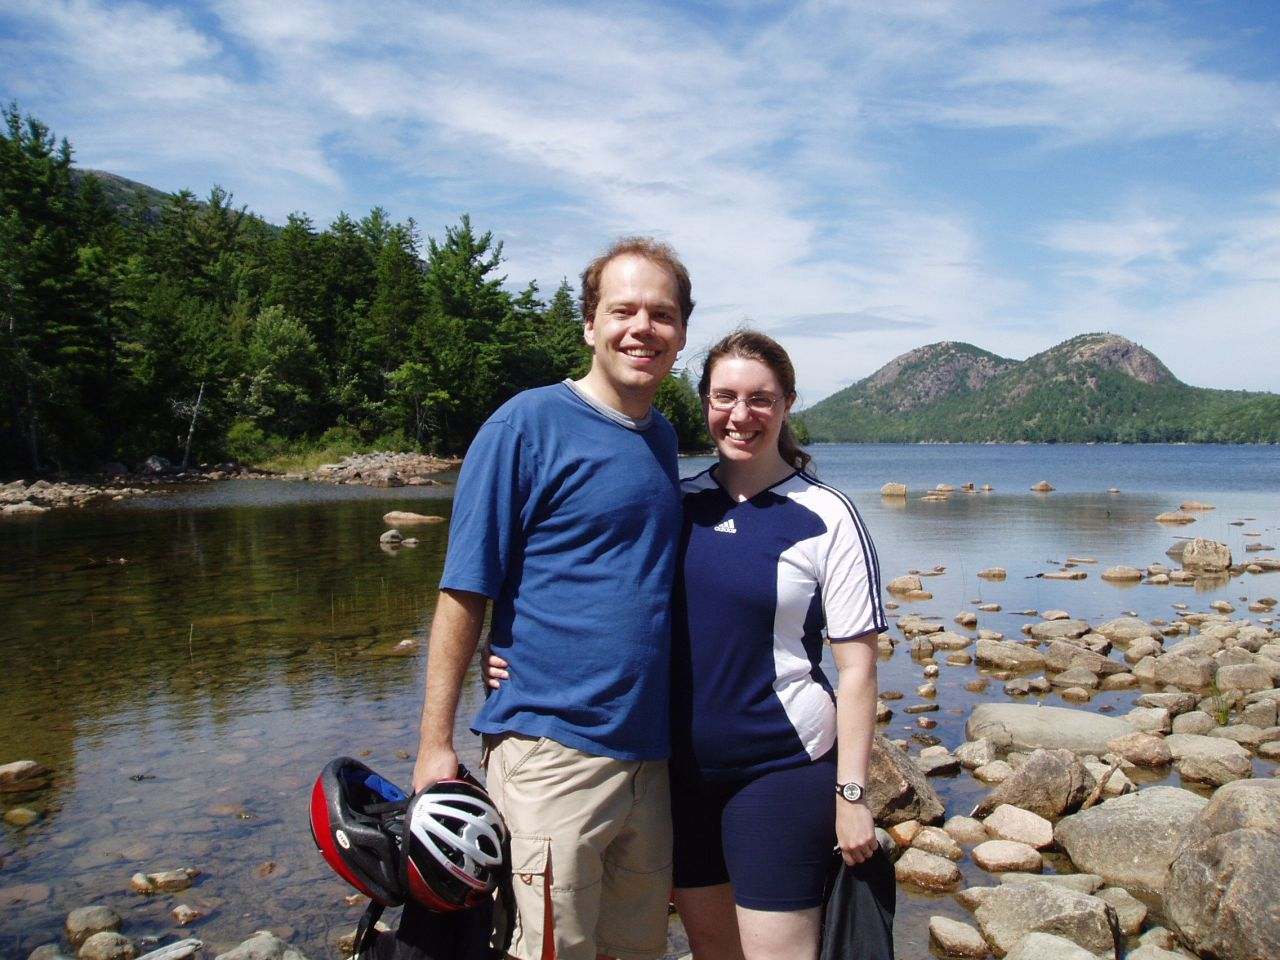 Anne and Bill at Jordan Pond in Acadia National Park, August 2005